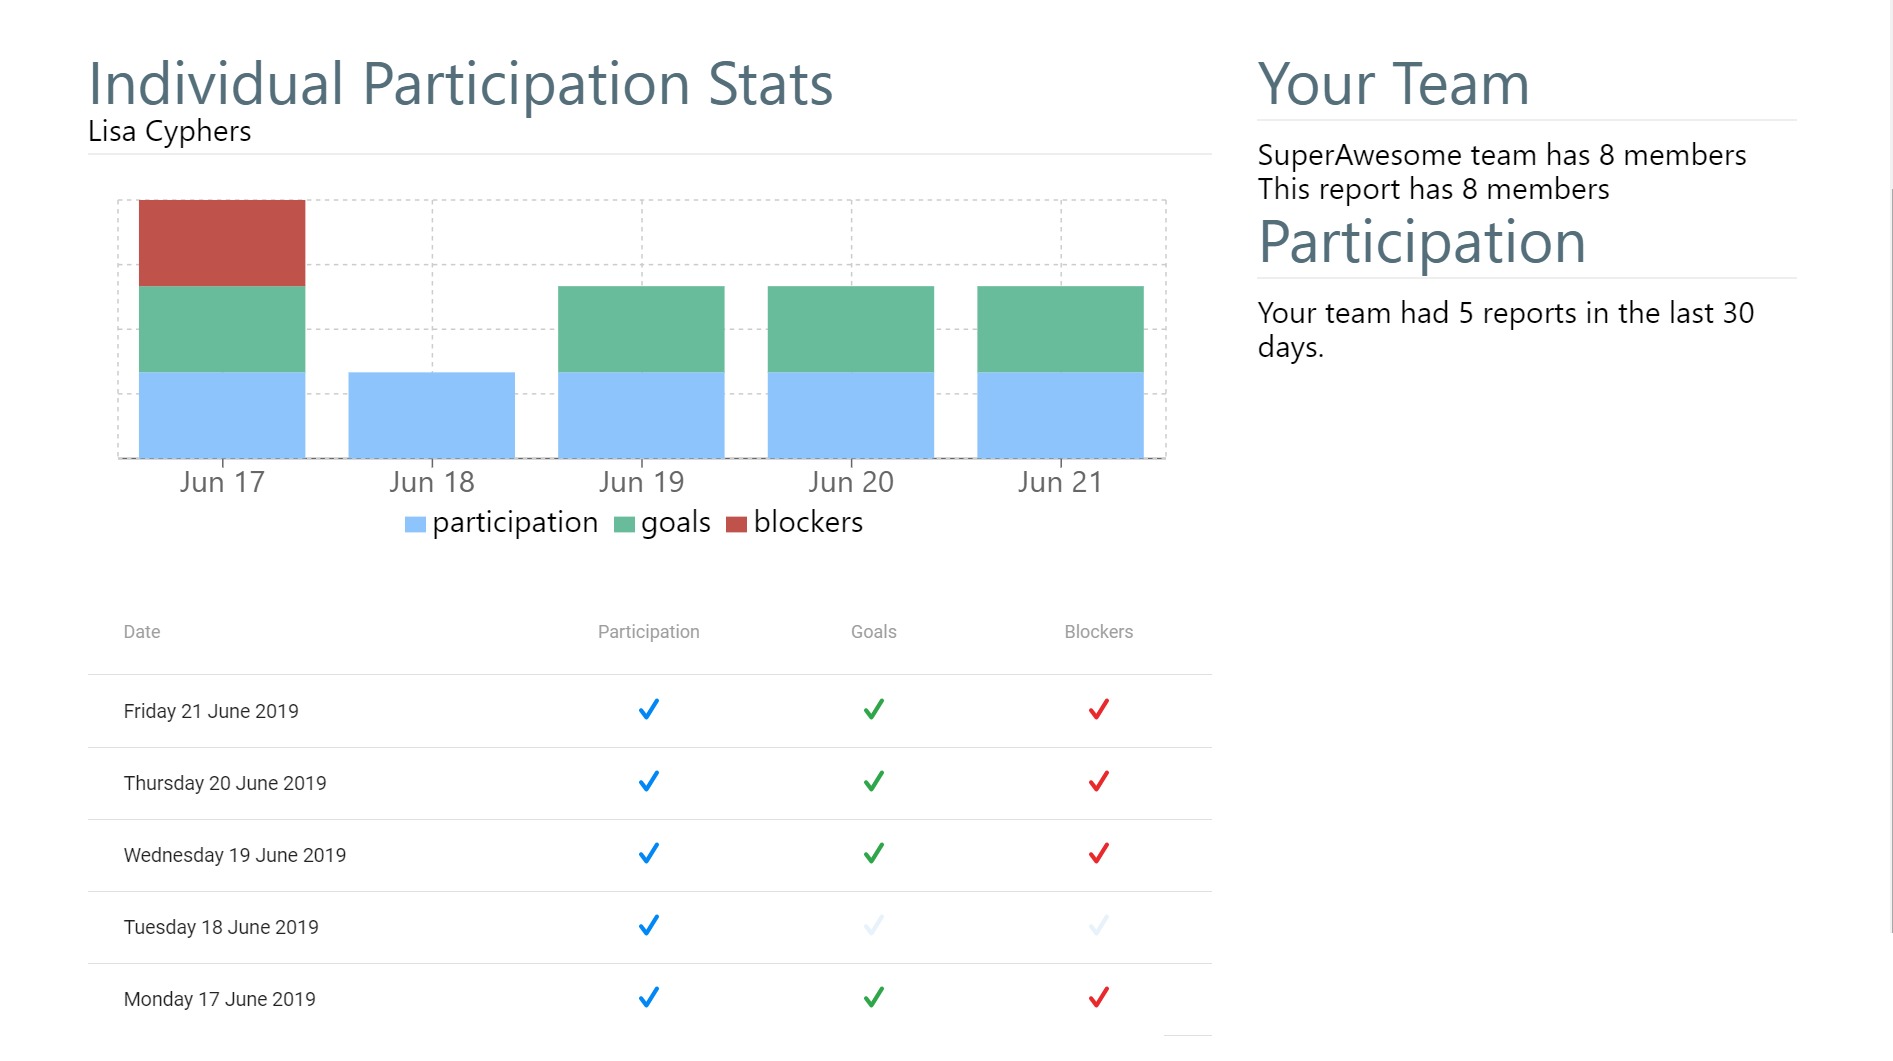 ScrumGenius Getting Started Guide Part 2 -- Individual Participation History